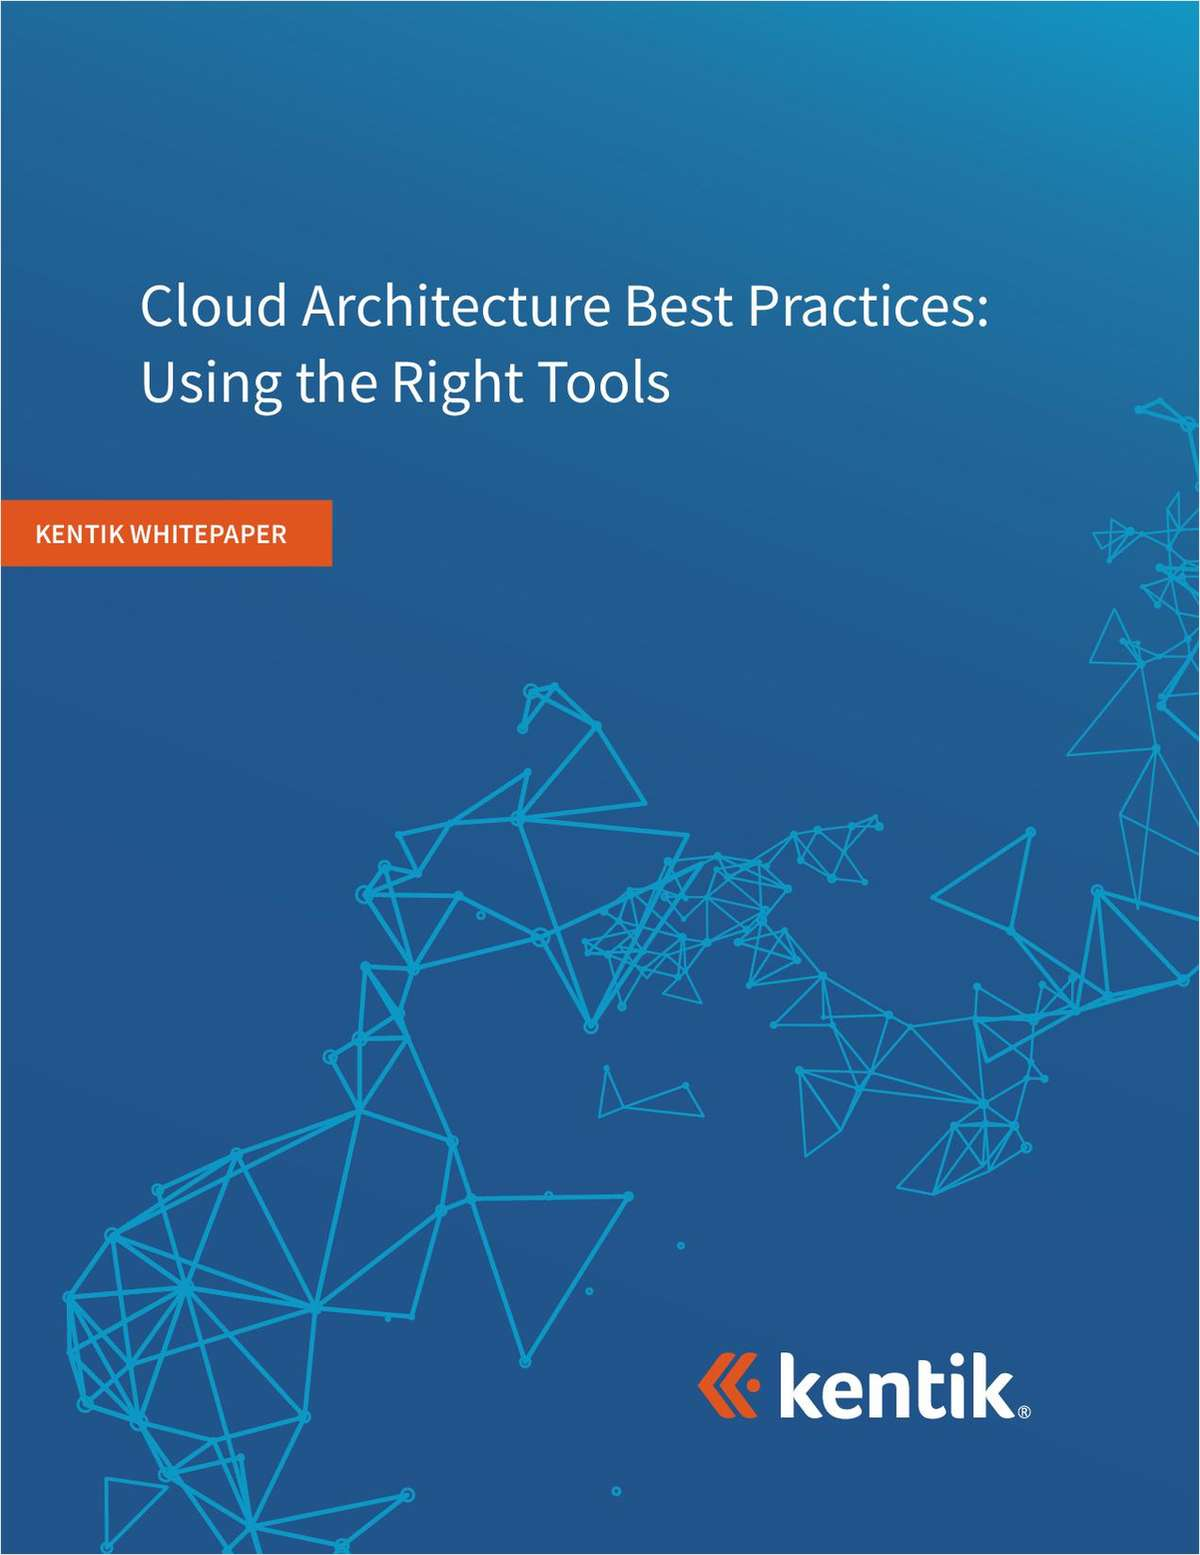 Cloud Architecture Best Practices: Using the Right Tools